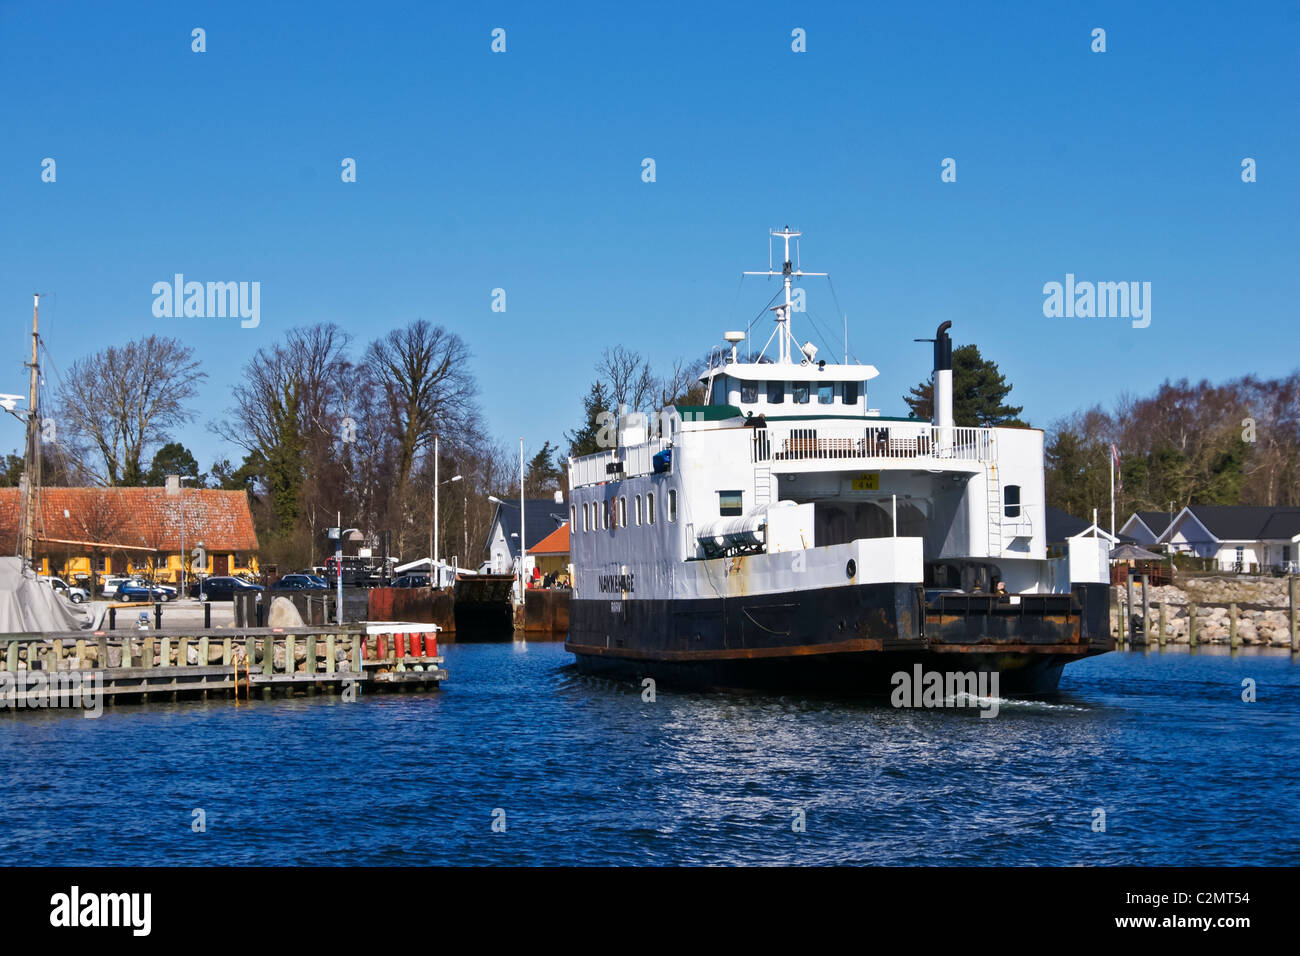 The Roervig-Hundested ferry Nakkehage is preparing to berth in  Roervig harbour Sealand Denmark - Stock Image